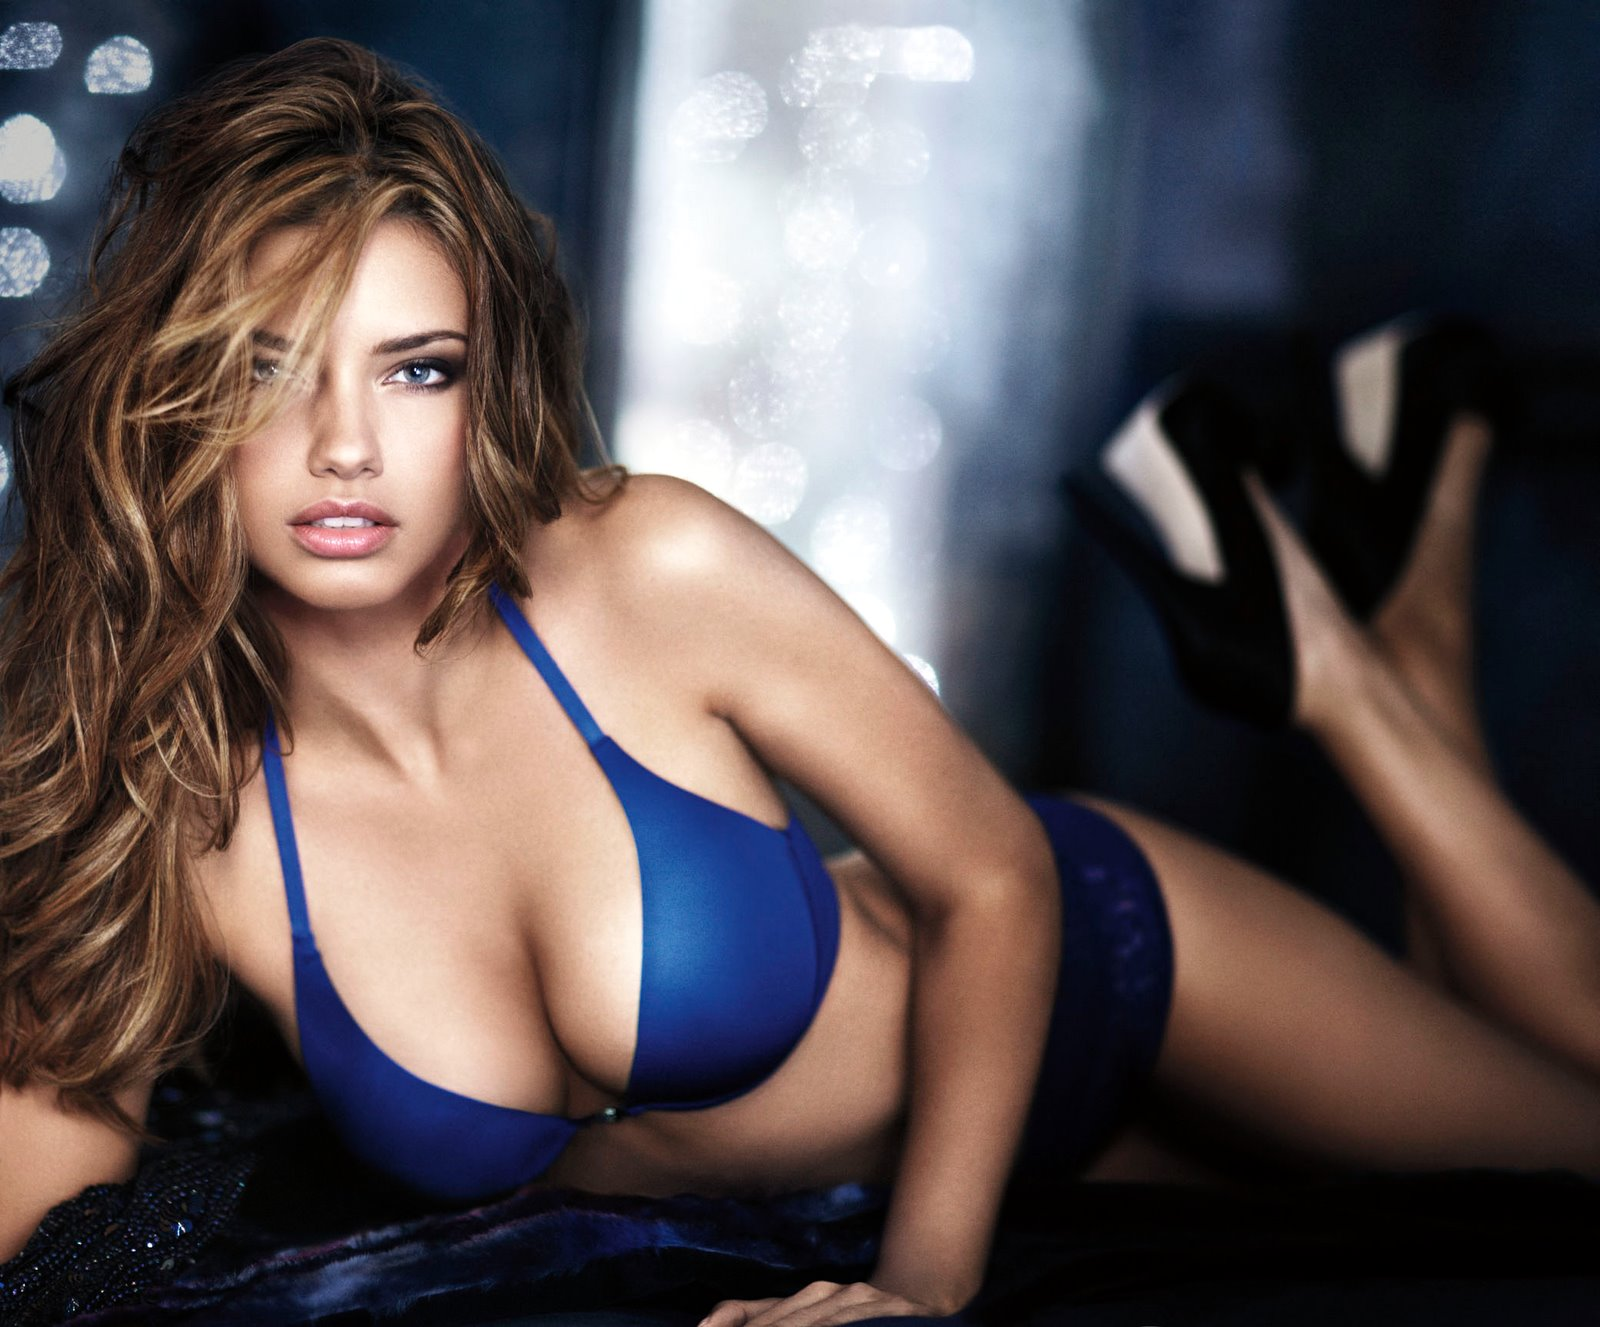 Top 10 of the Hottest Female Celebrities of the World